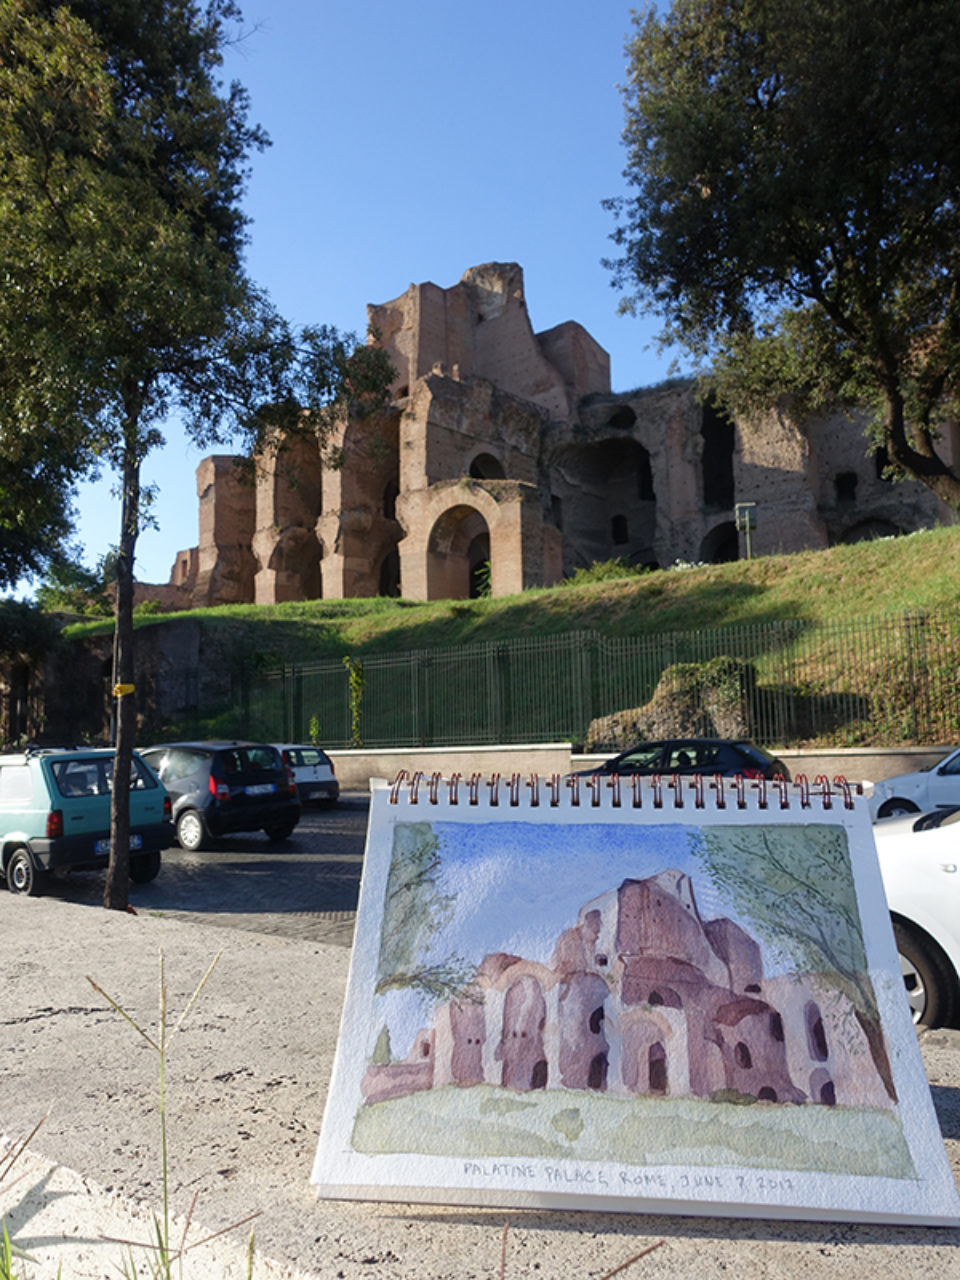 Tour participant Sasha Pokrovskaya's watercolor sketch of the Palatine Palace